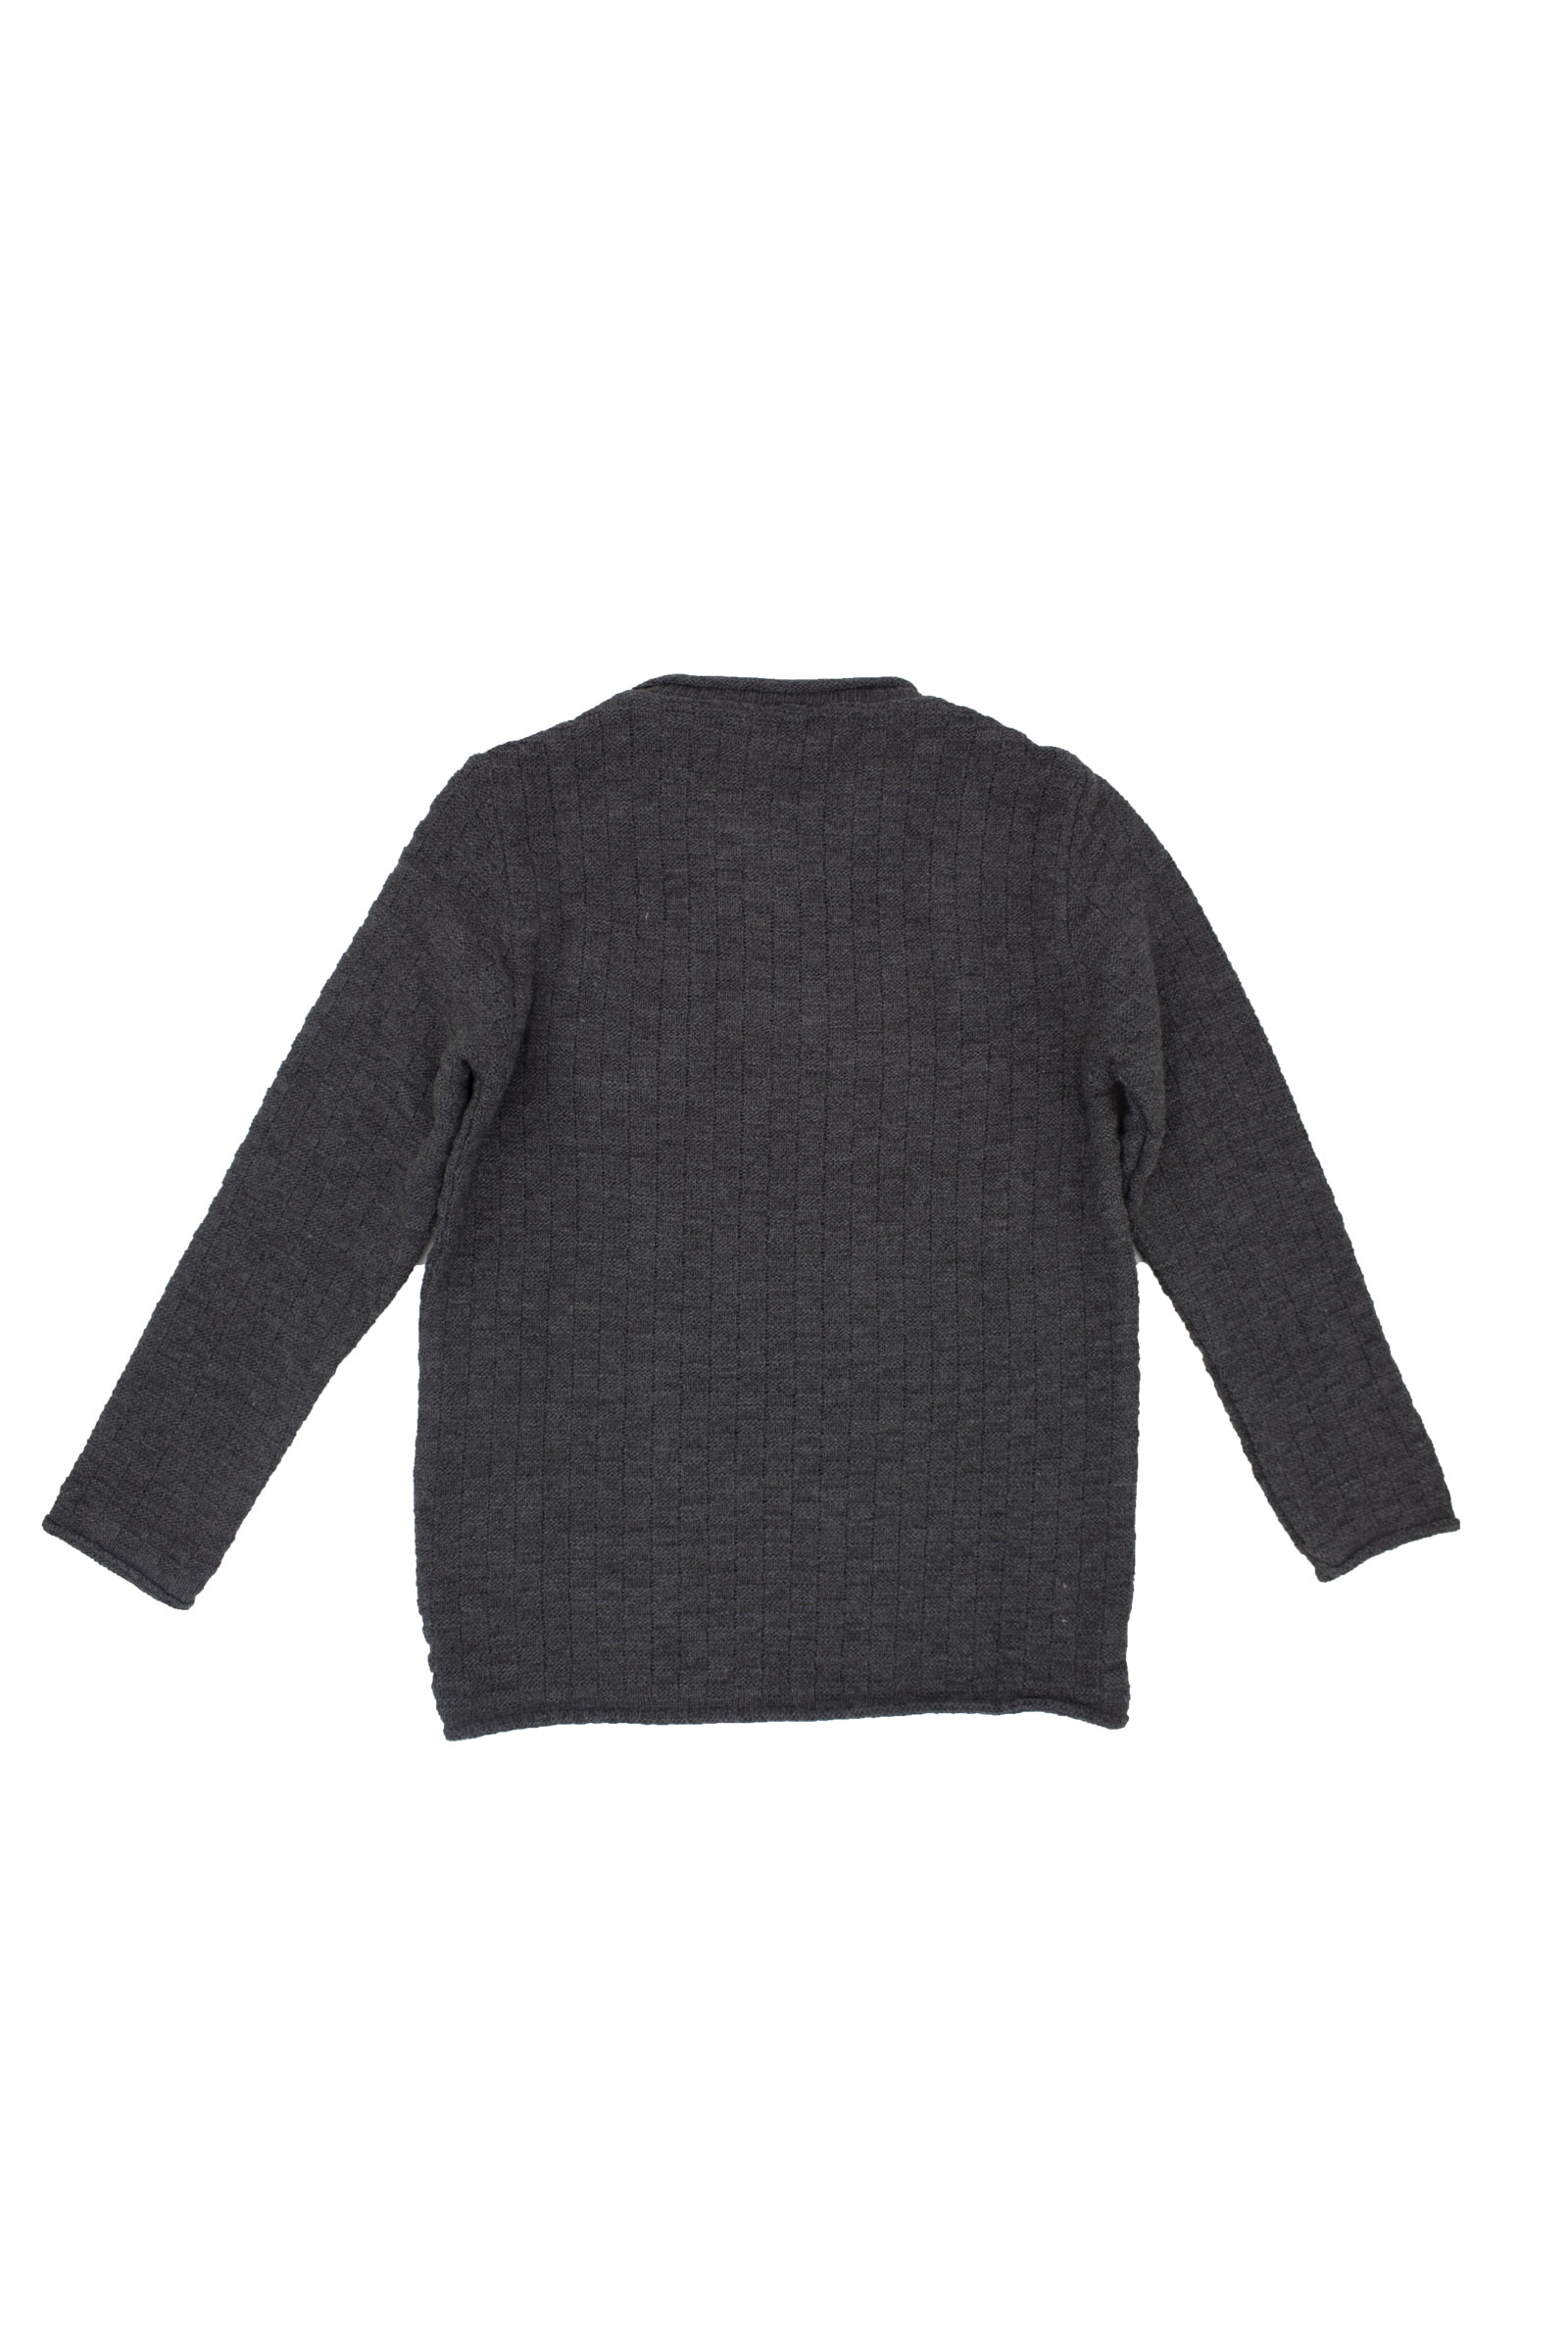 Frank Ferry pullover FRANK FERRY | Pullover | FF5257GRIGIO